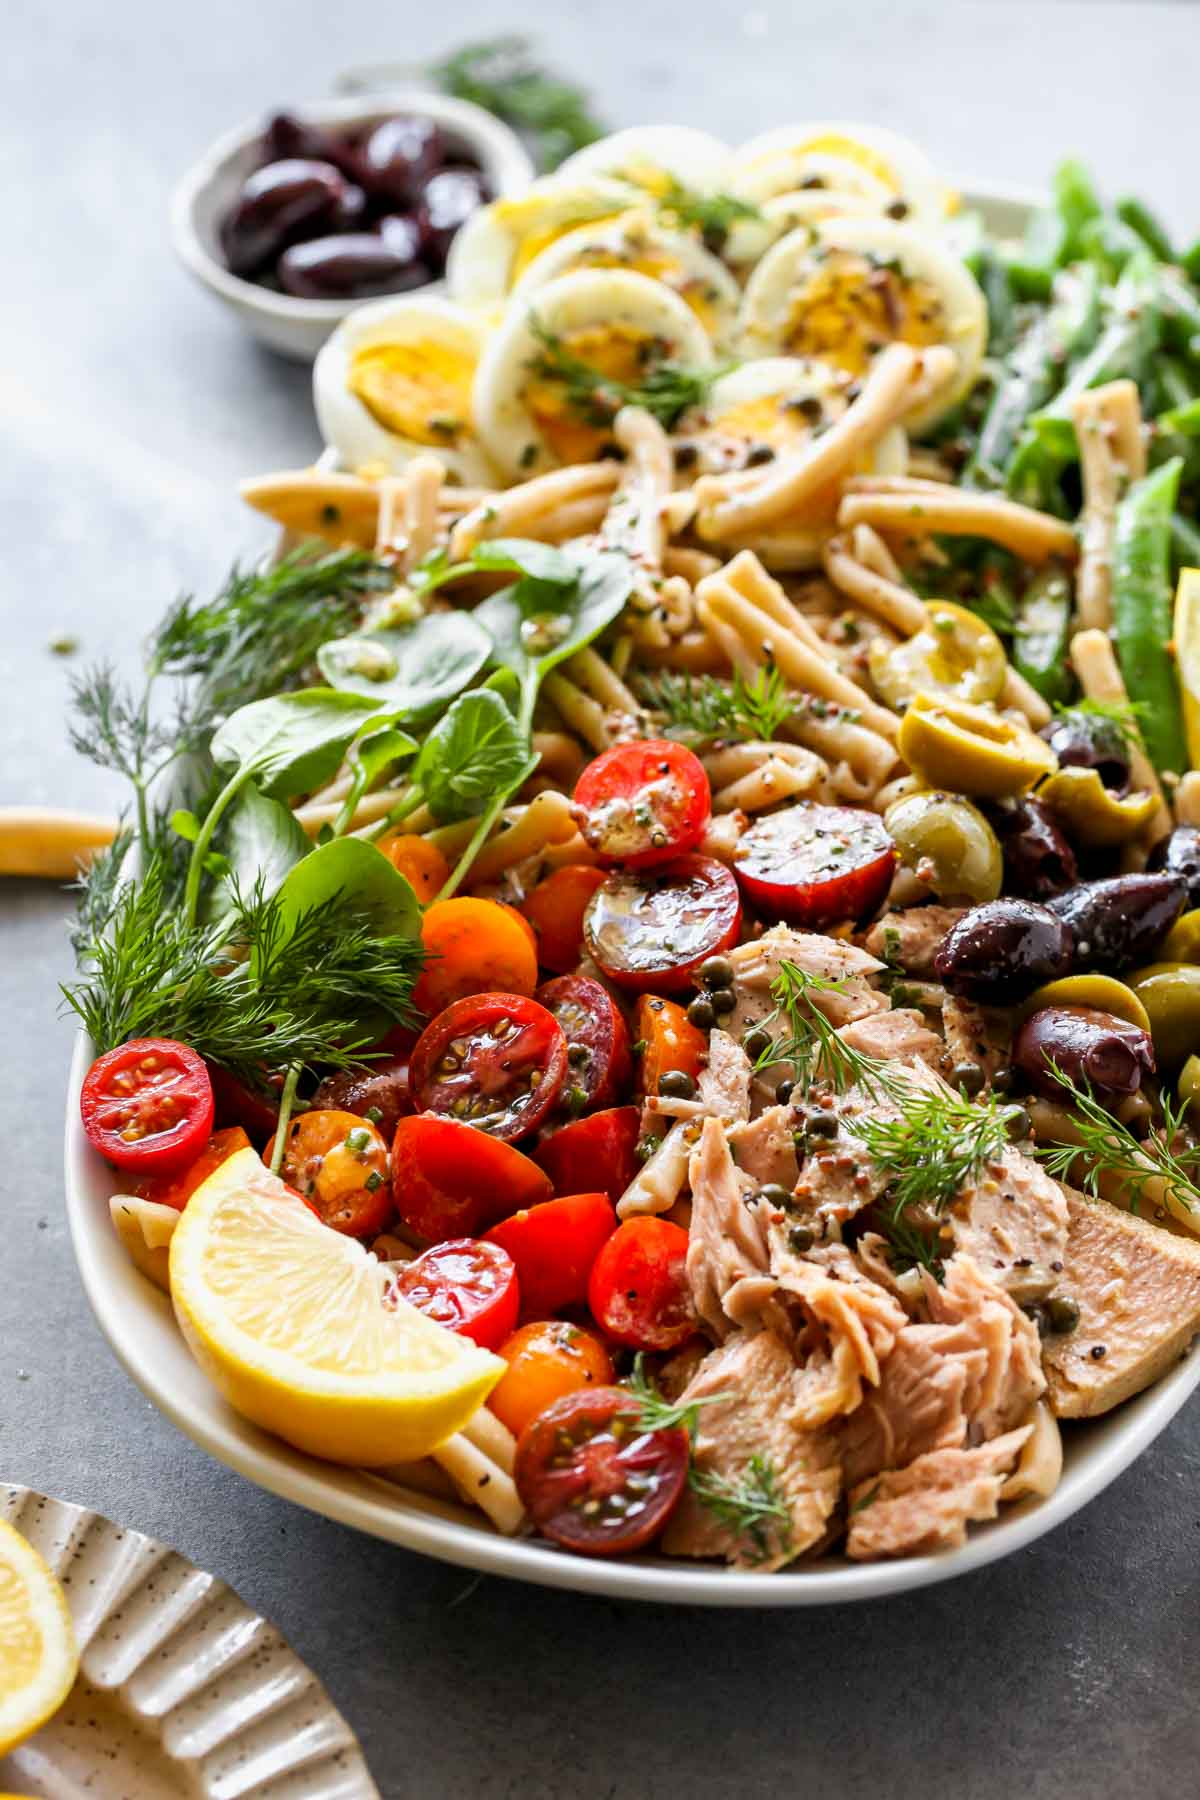 Tuna pasta salad on a platter with tomatoes, eggs, and green beans